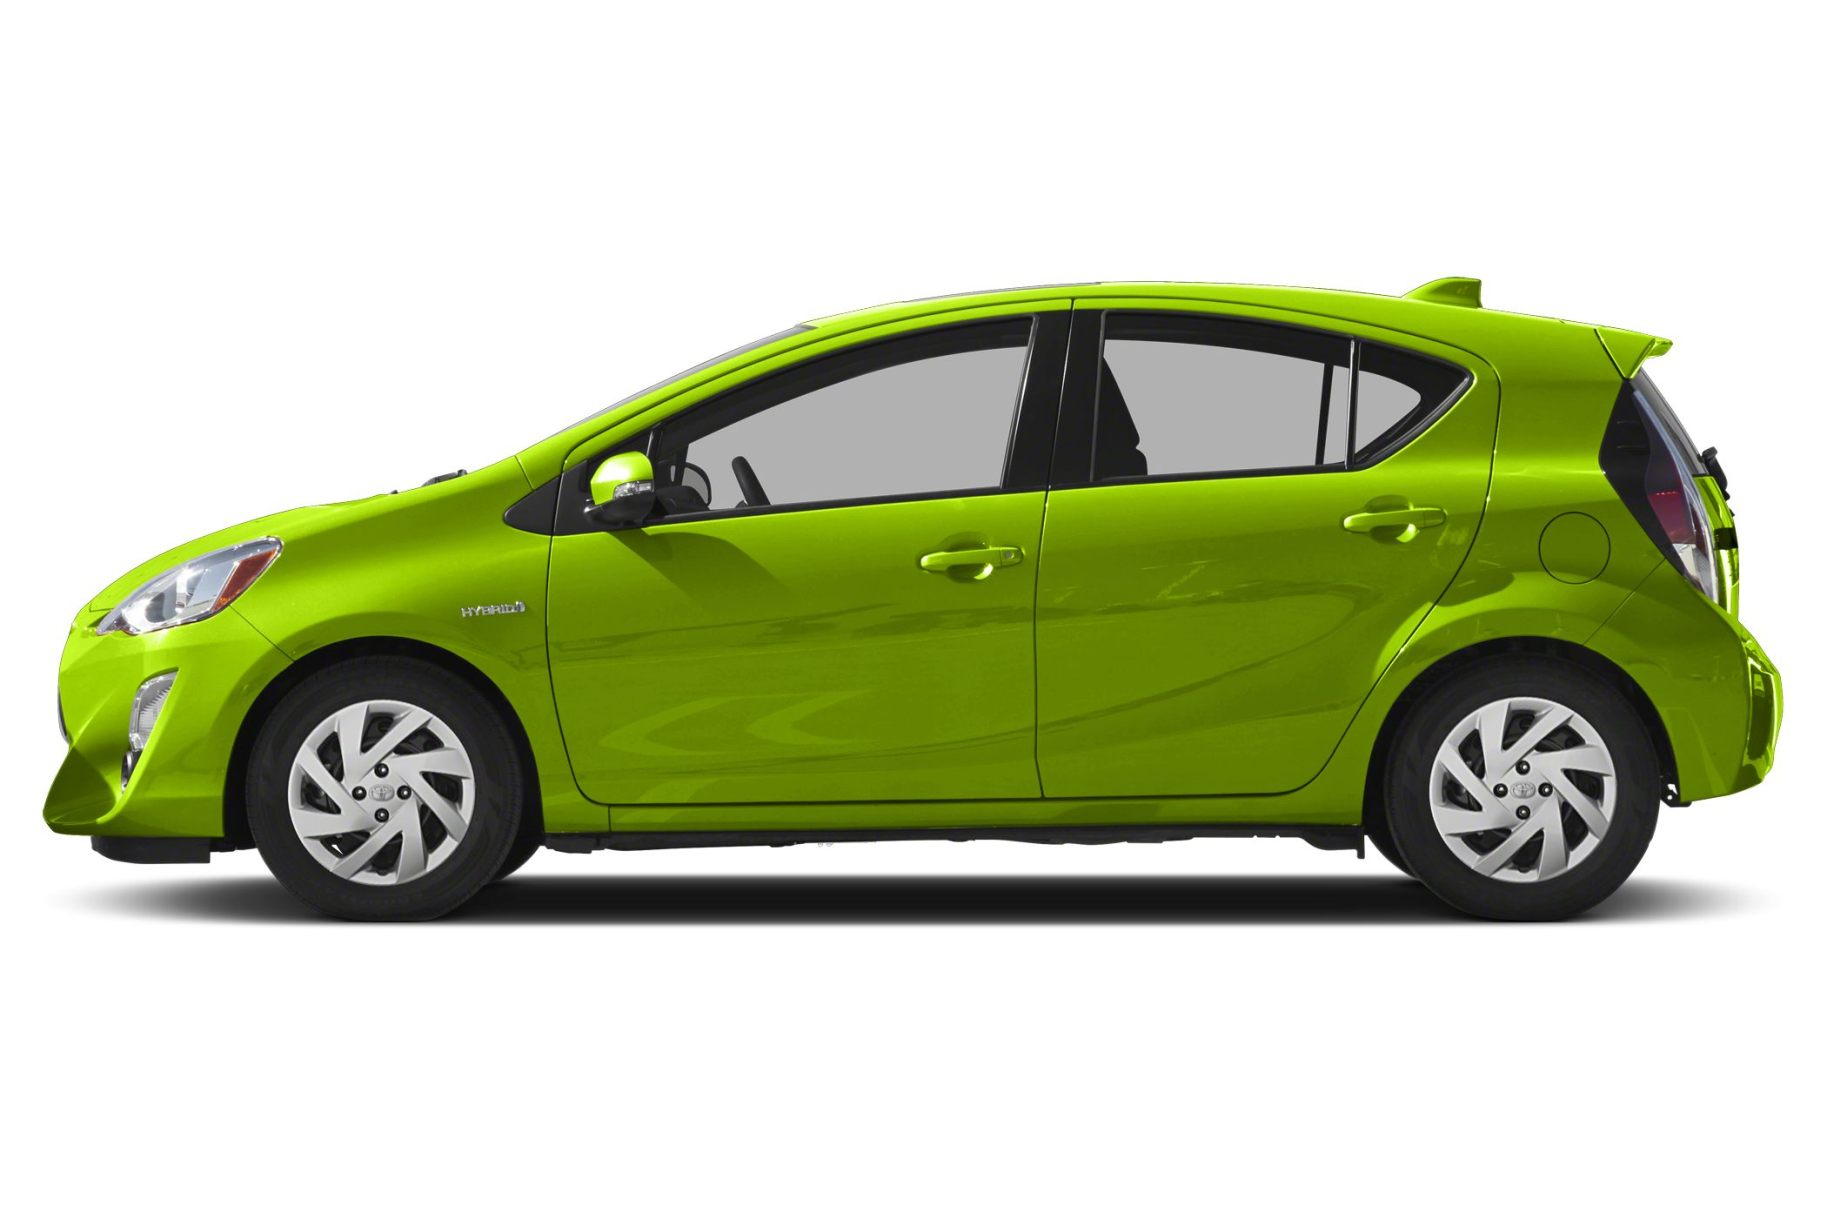 2017 Toyota Prius Green Car Hd Awesome Picture